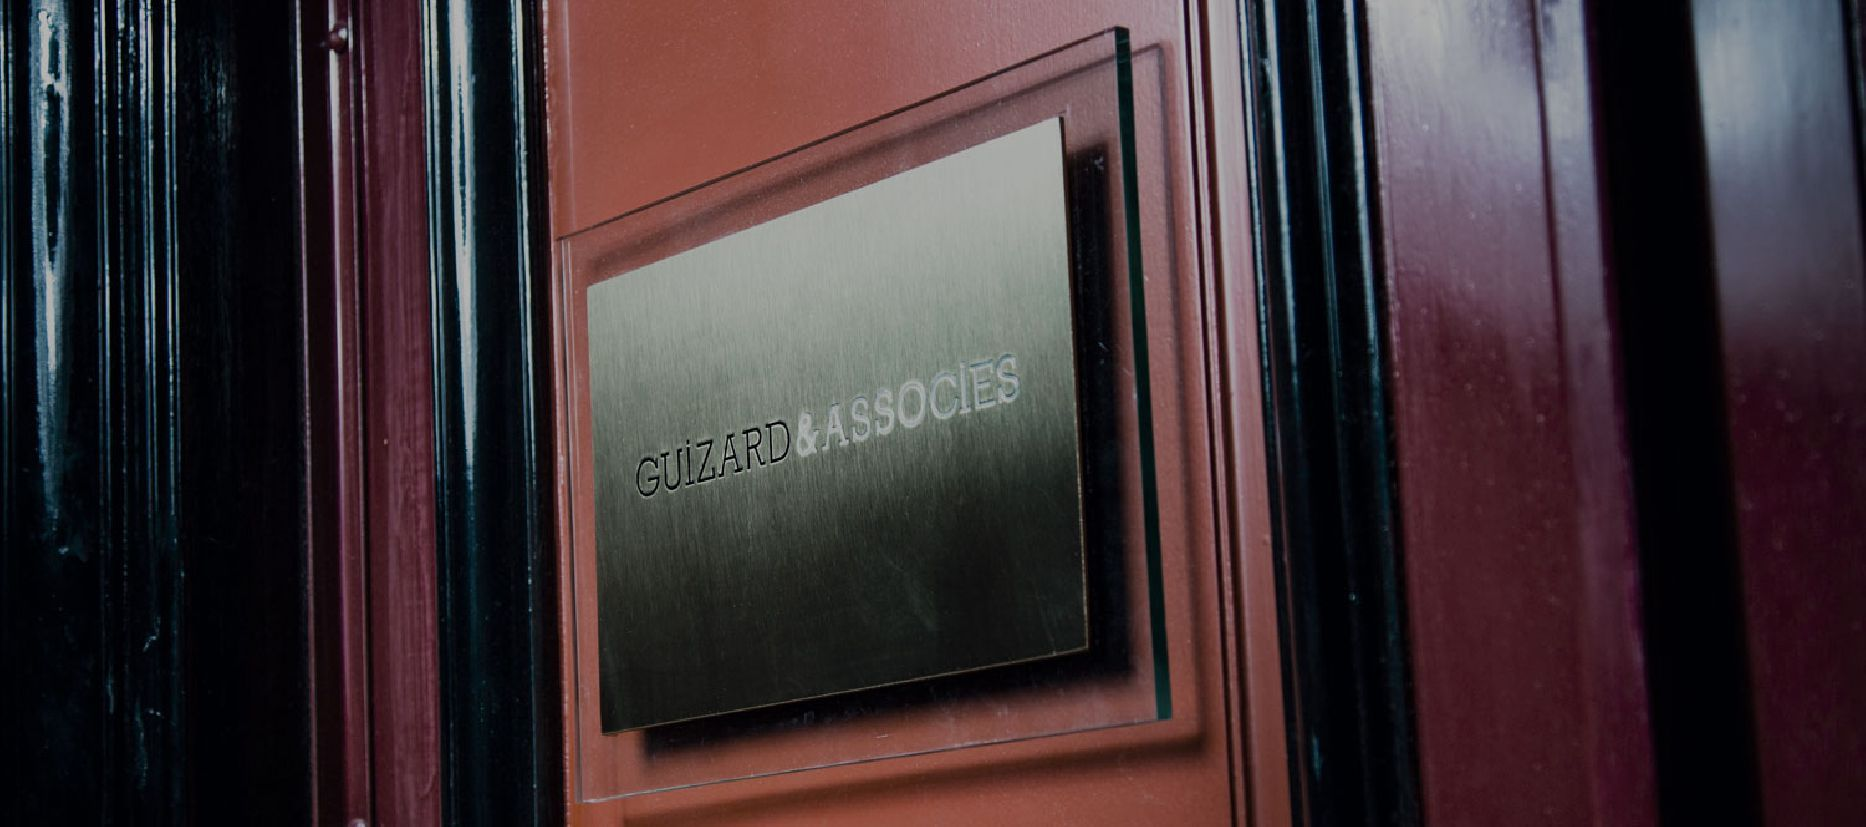 Avocat en droit de la propri t intellectuelle paris - Cabinet avocat propriete intellectuelle paris ...